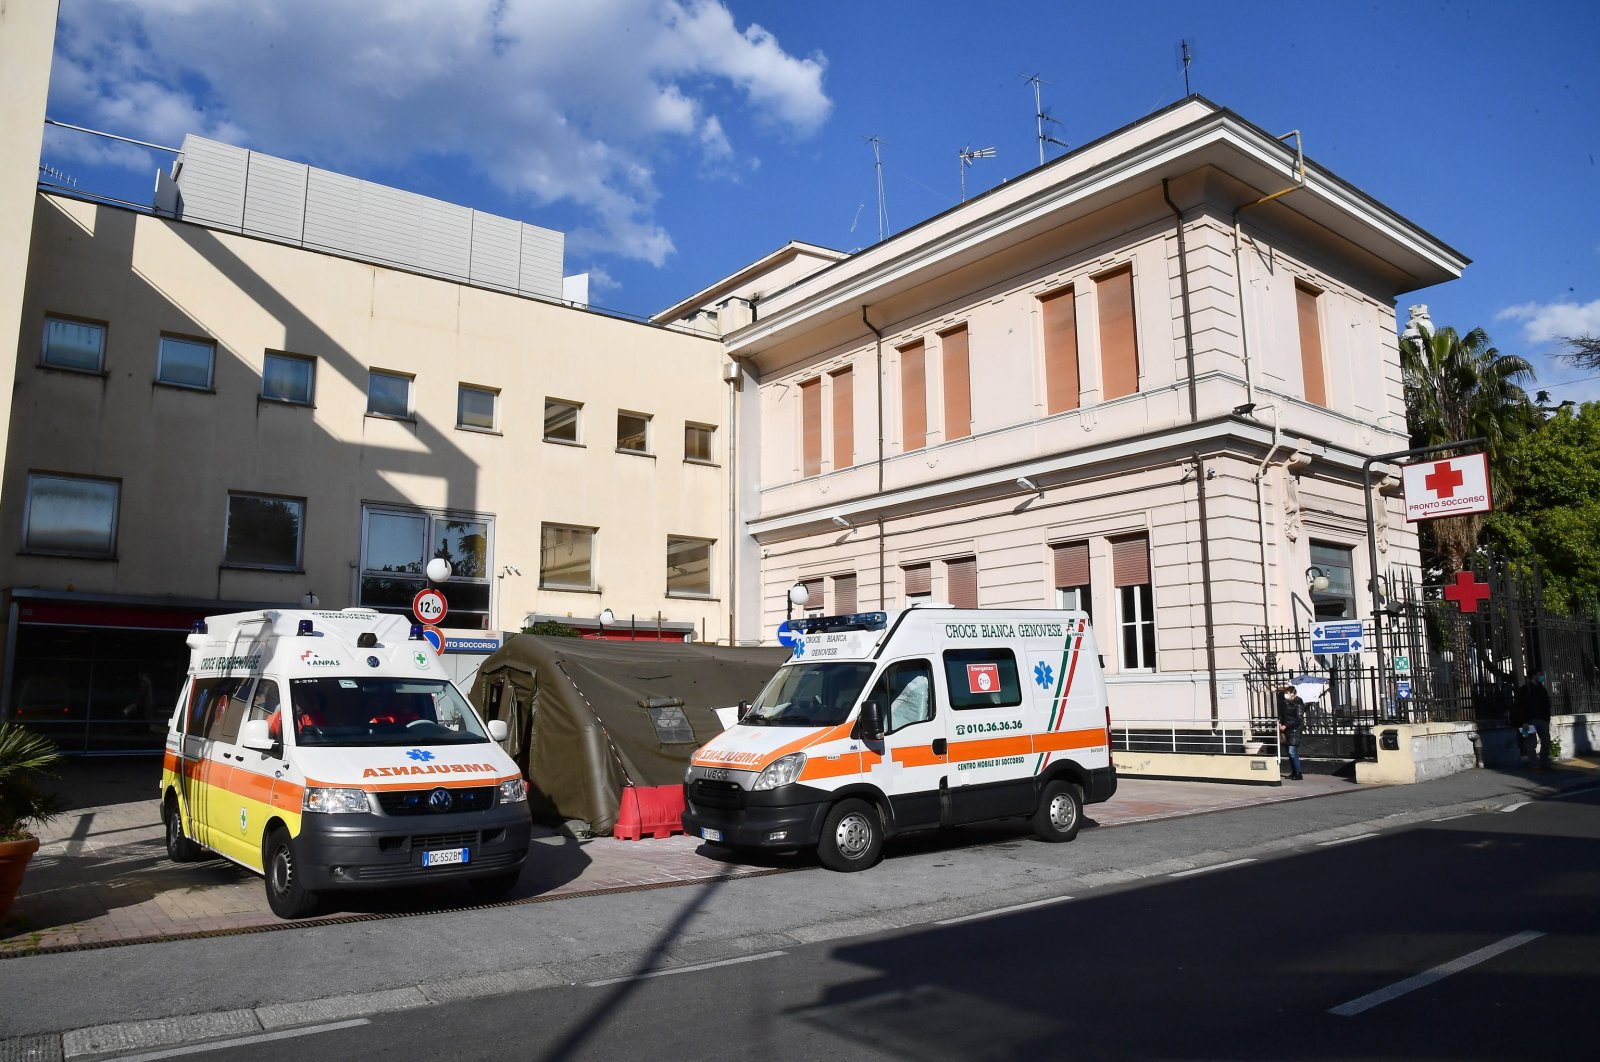 Health workers of Villa Scassi Hospital where patients potentially infected with the coronavirus will be hospitalized, in Genoa, Italy, March 24, 2020. (EPA Photo)